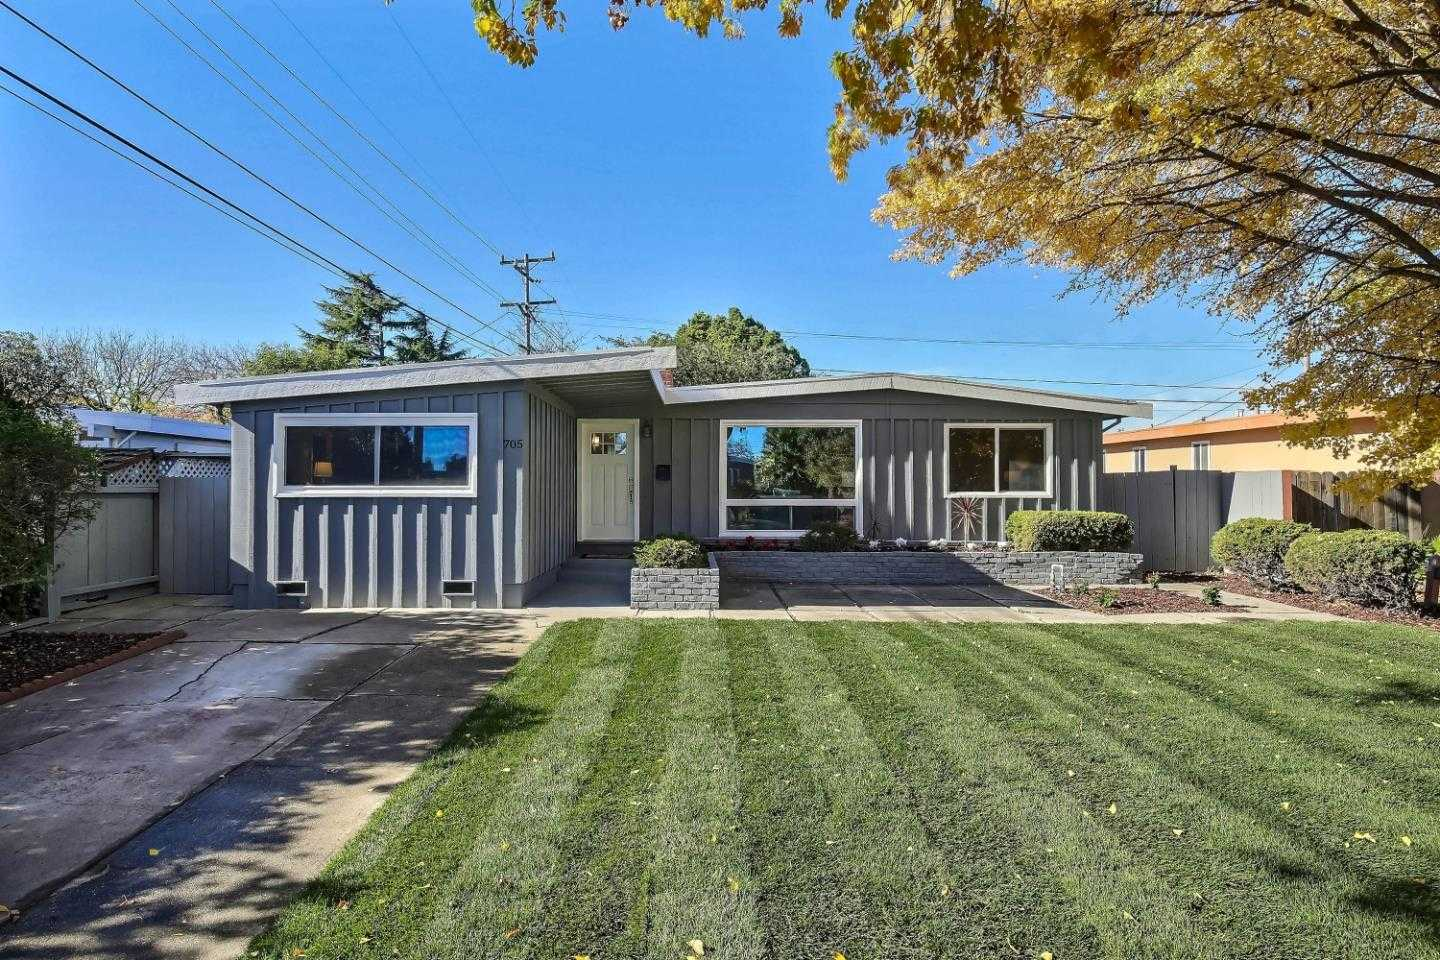 $1,199,000 - 4Br/2Ba -  for Sale in Sunnyvale